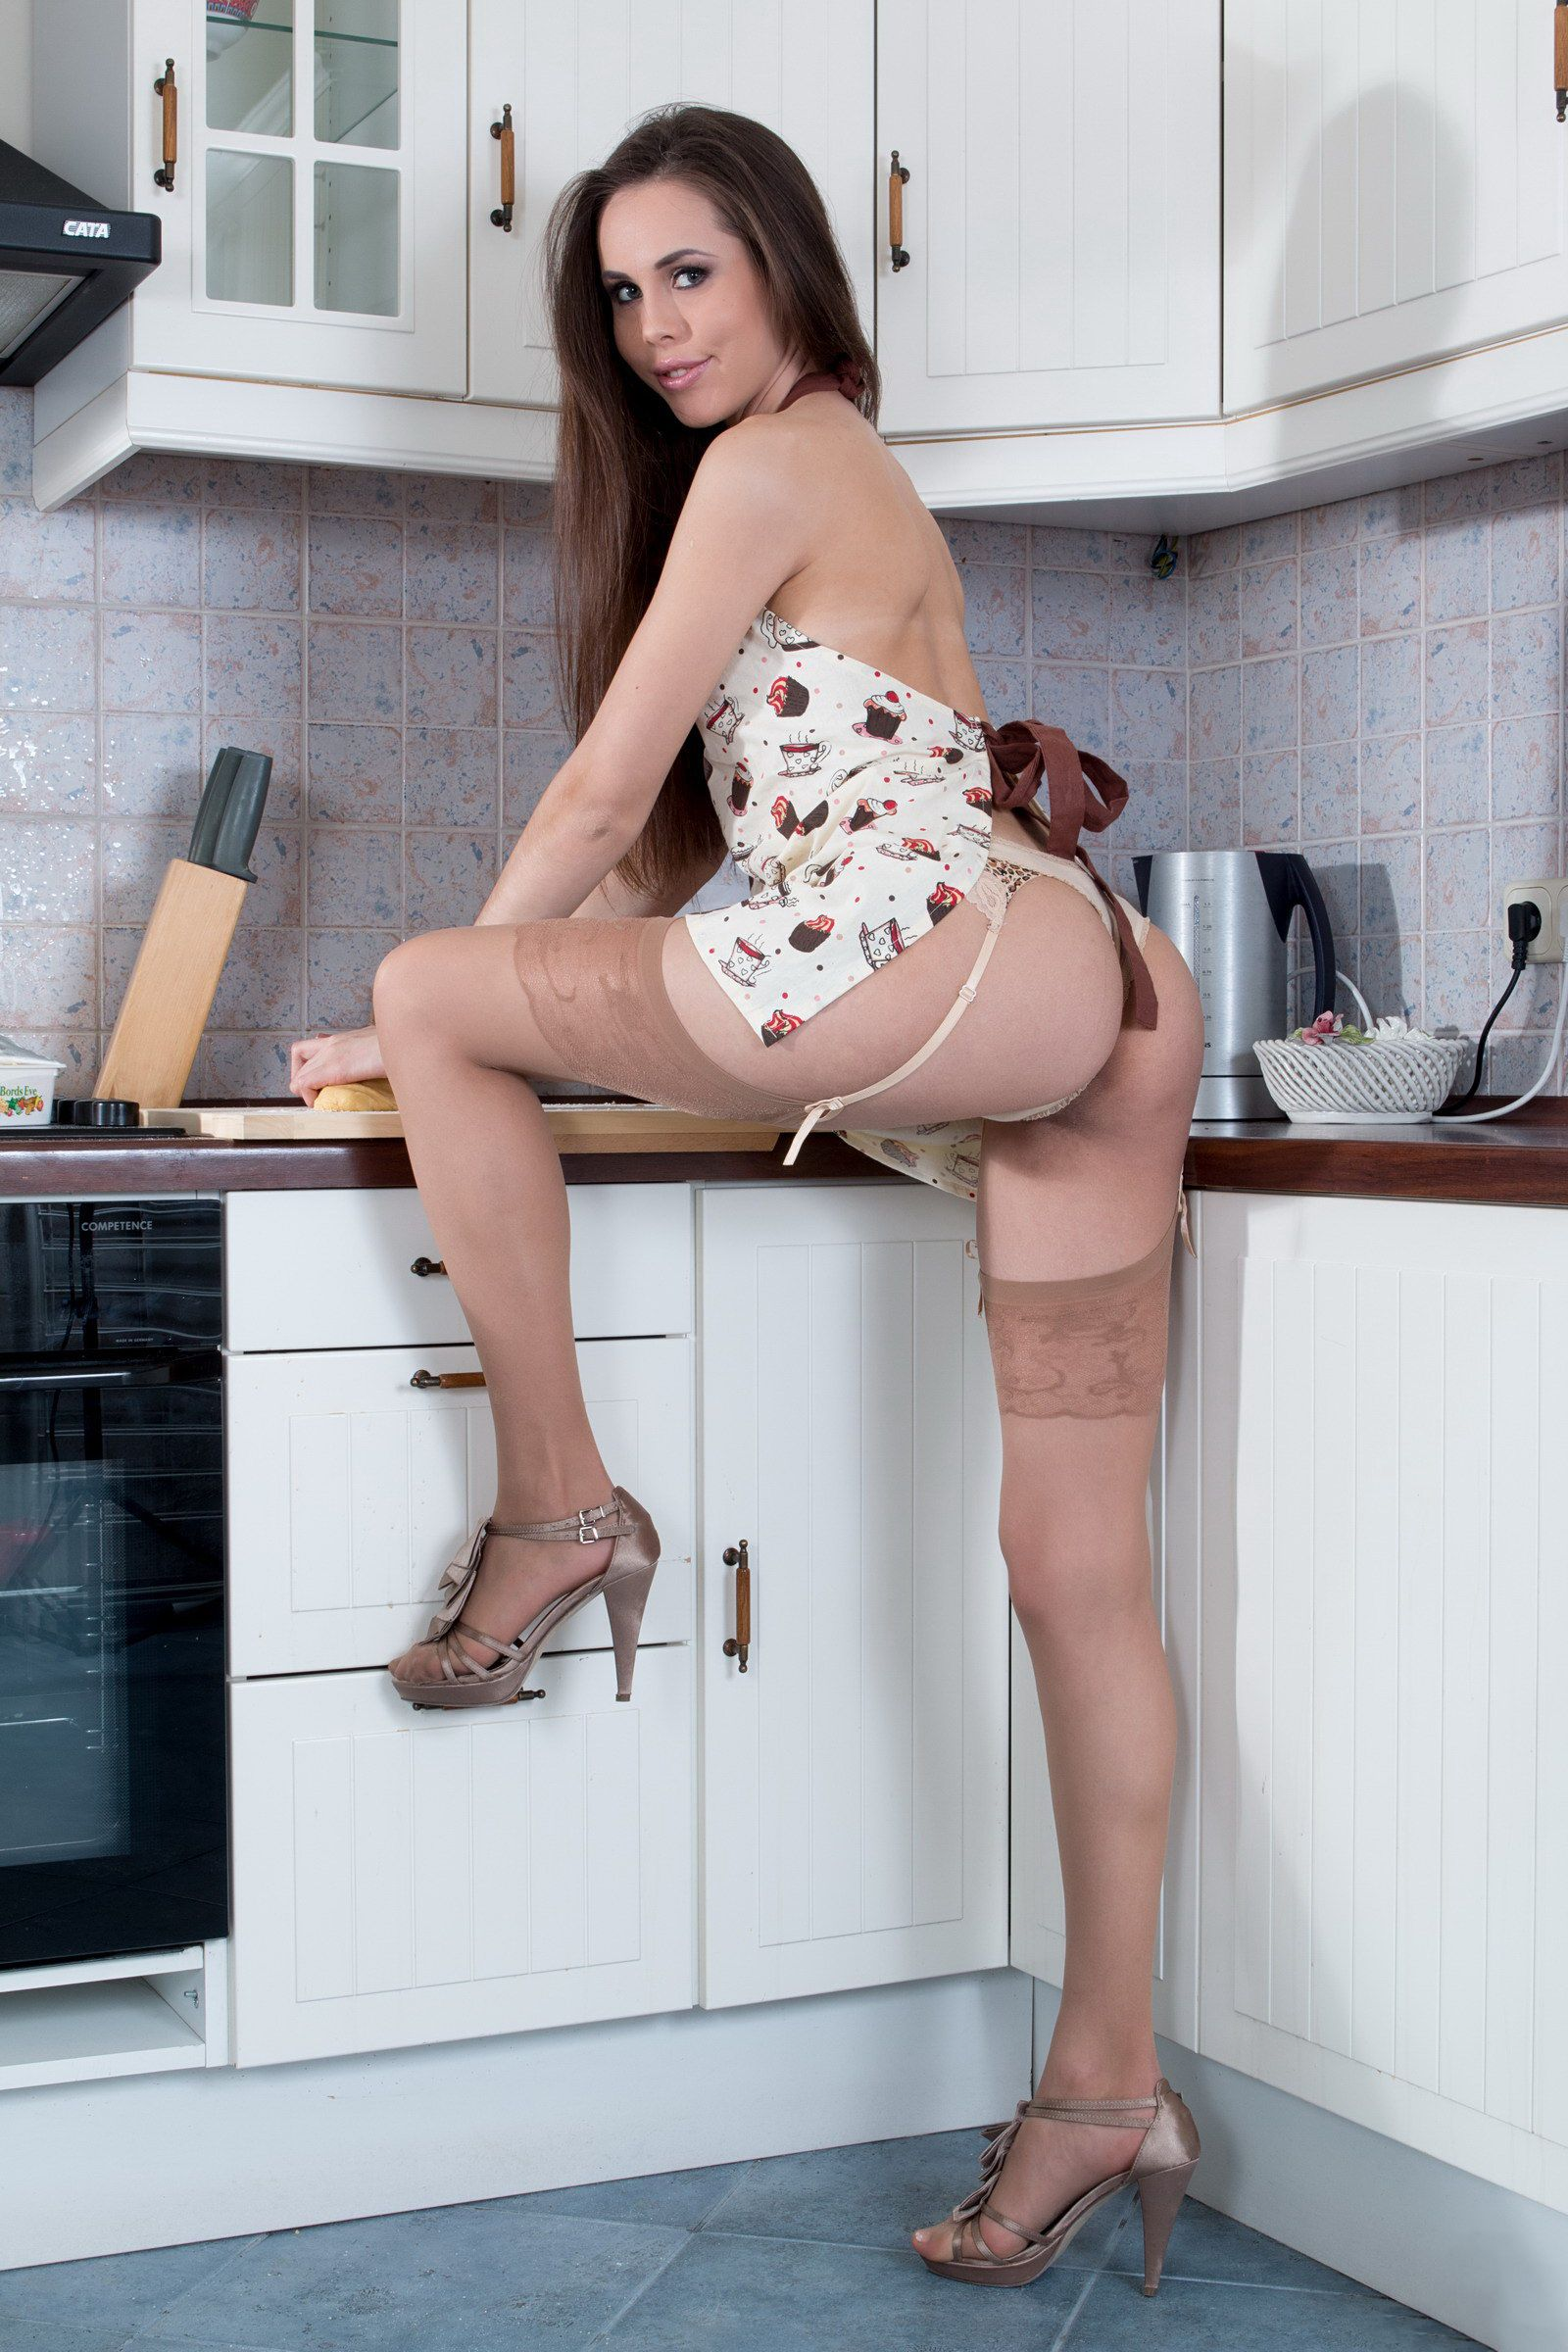 Let's not wearing stockings with apron opinion